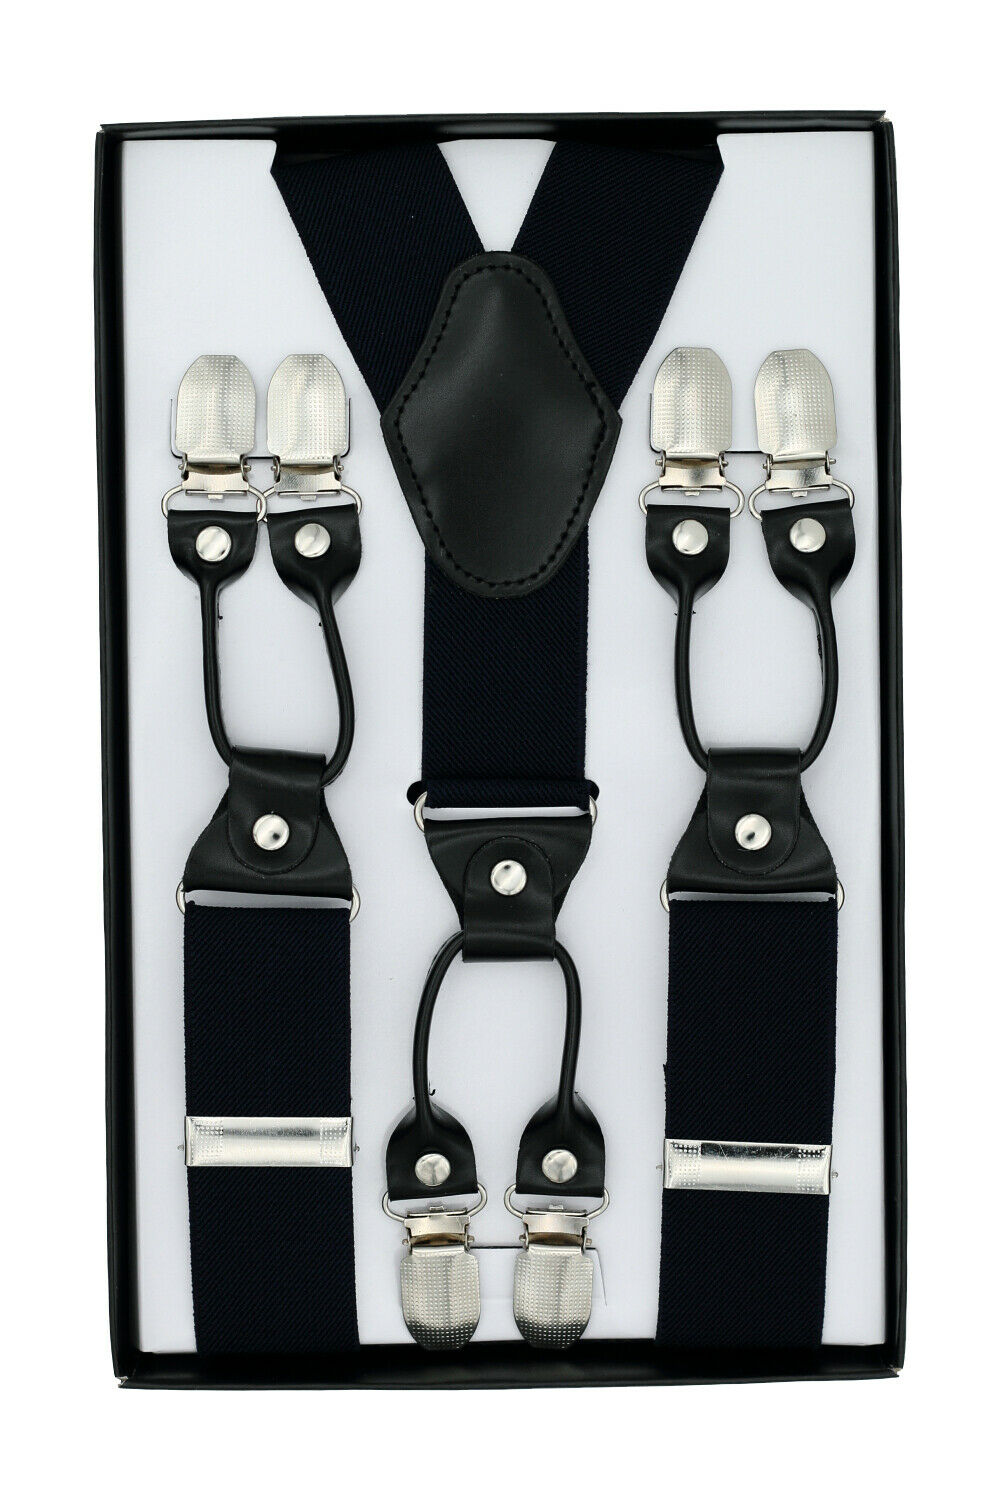 Suspenders for Men, Adjustable Braces Y Shape with 6 Strong Metal Clips